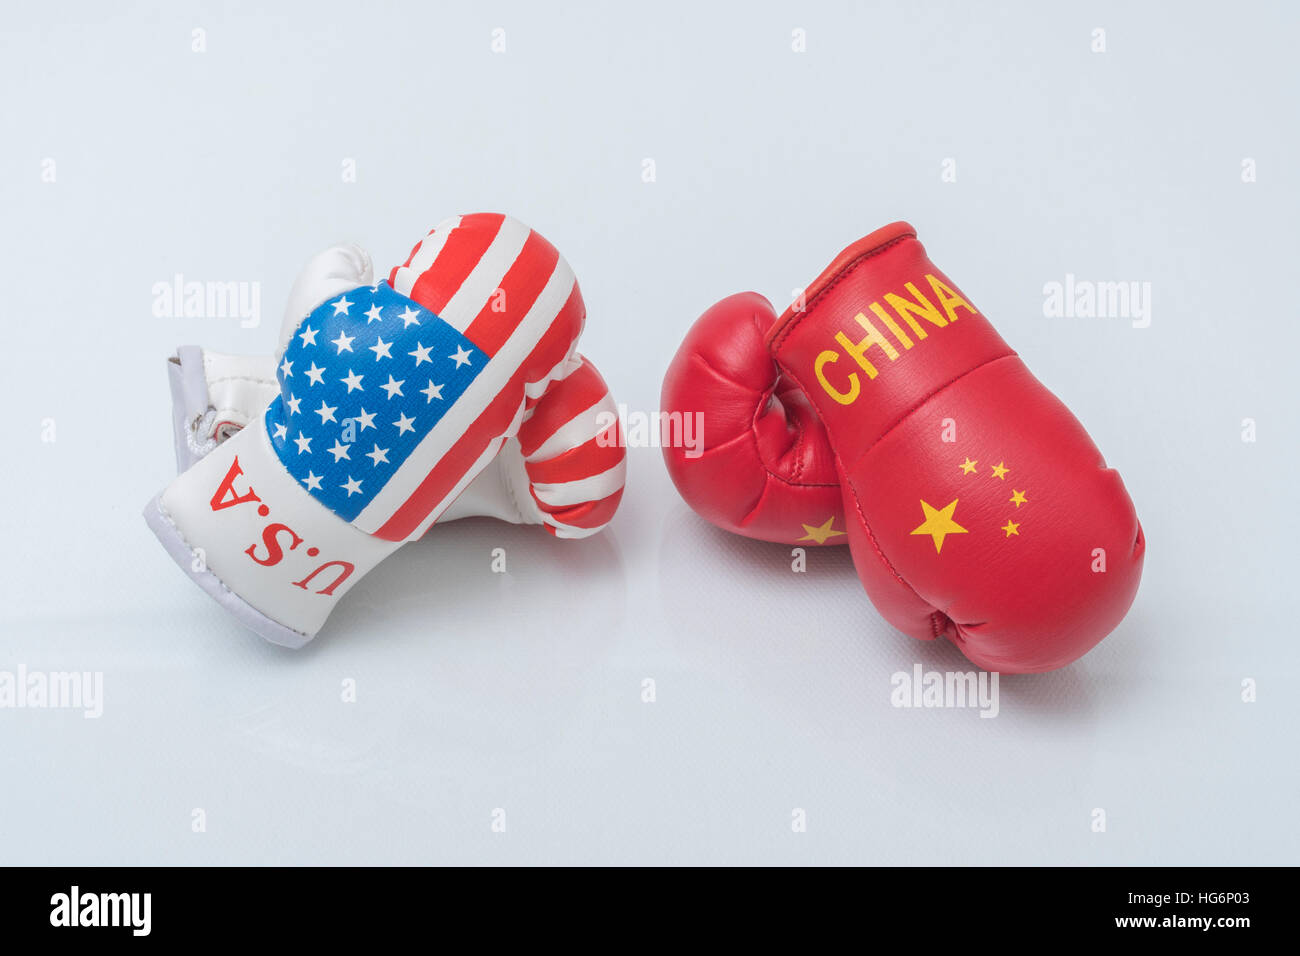 Mini US Stars & Stripes boxing gloves - as visual metaphor for concept of US-Chinese tensions, US China trade - Stock Image